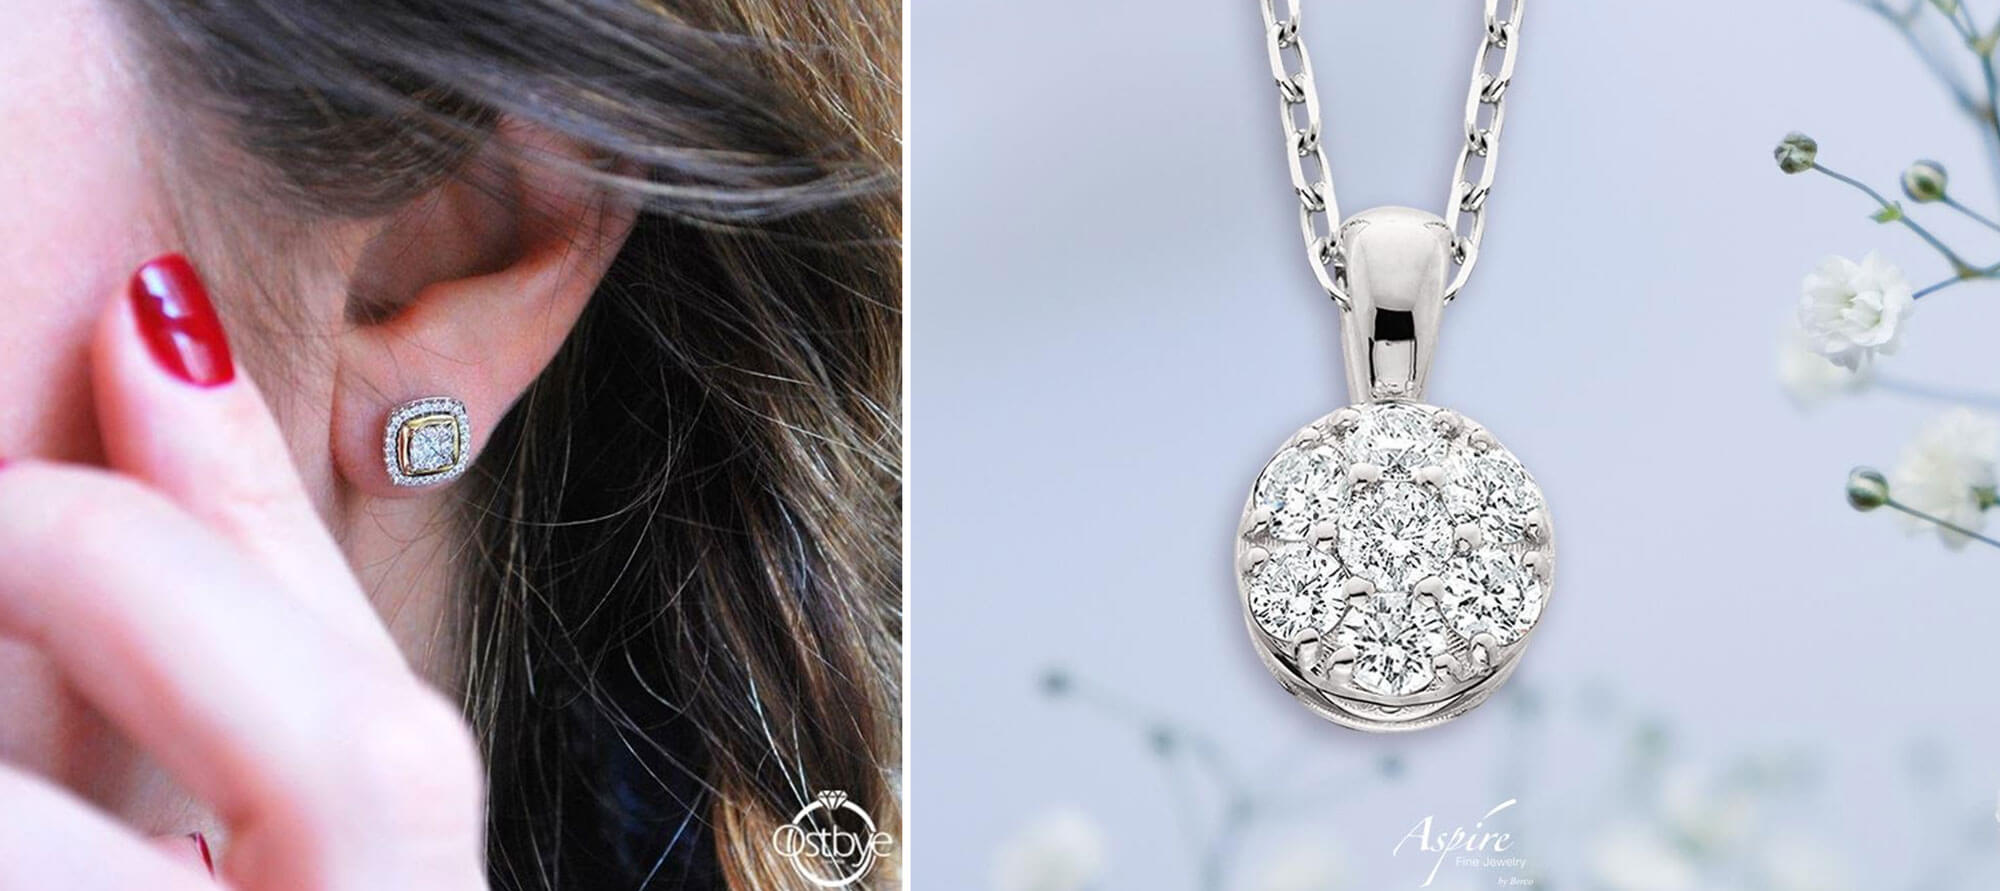 Diamond Erranings by Ostbye | Diamond necklace pendent by Aspire